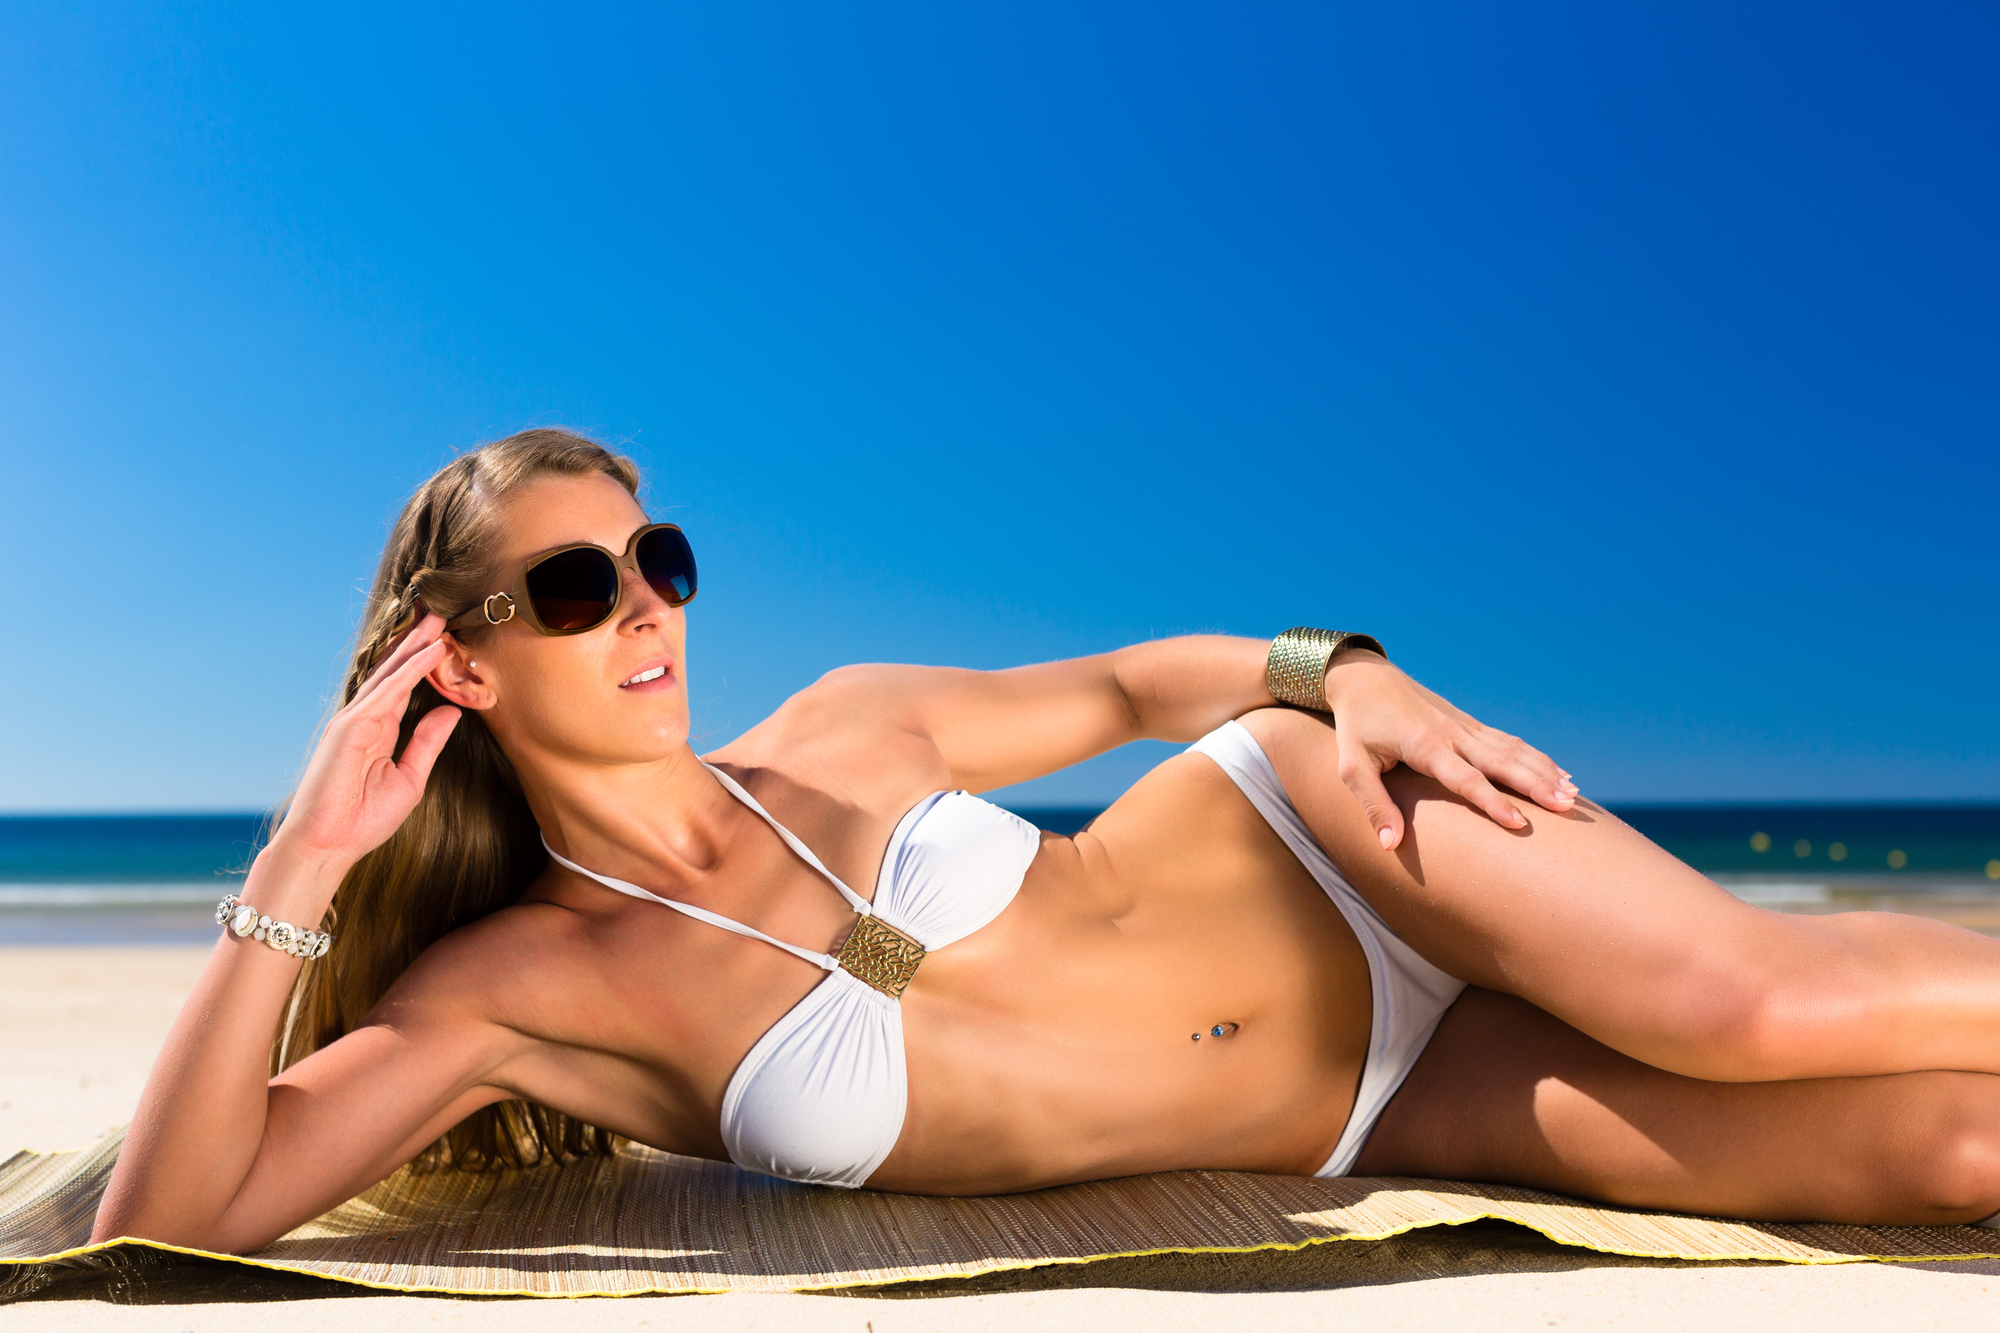 Attractive Woman in white bikini sitting in the sun on beach, a lot of copyspace in the blue sky